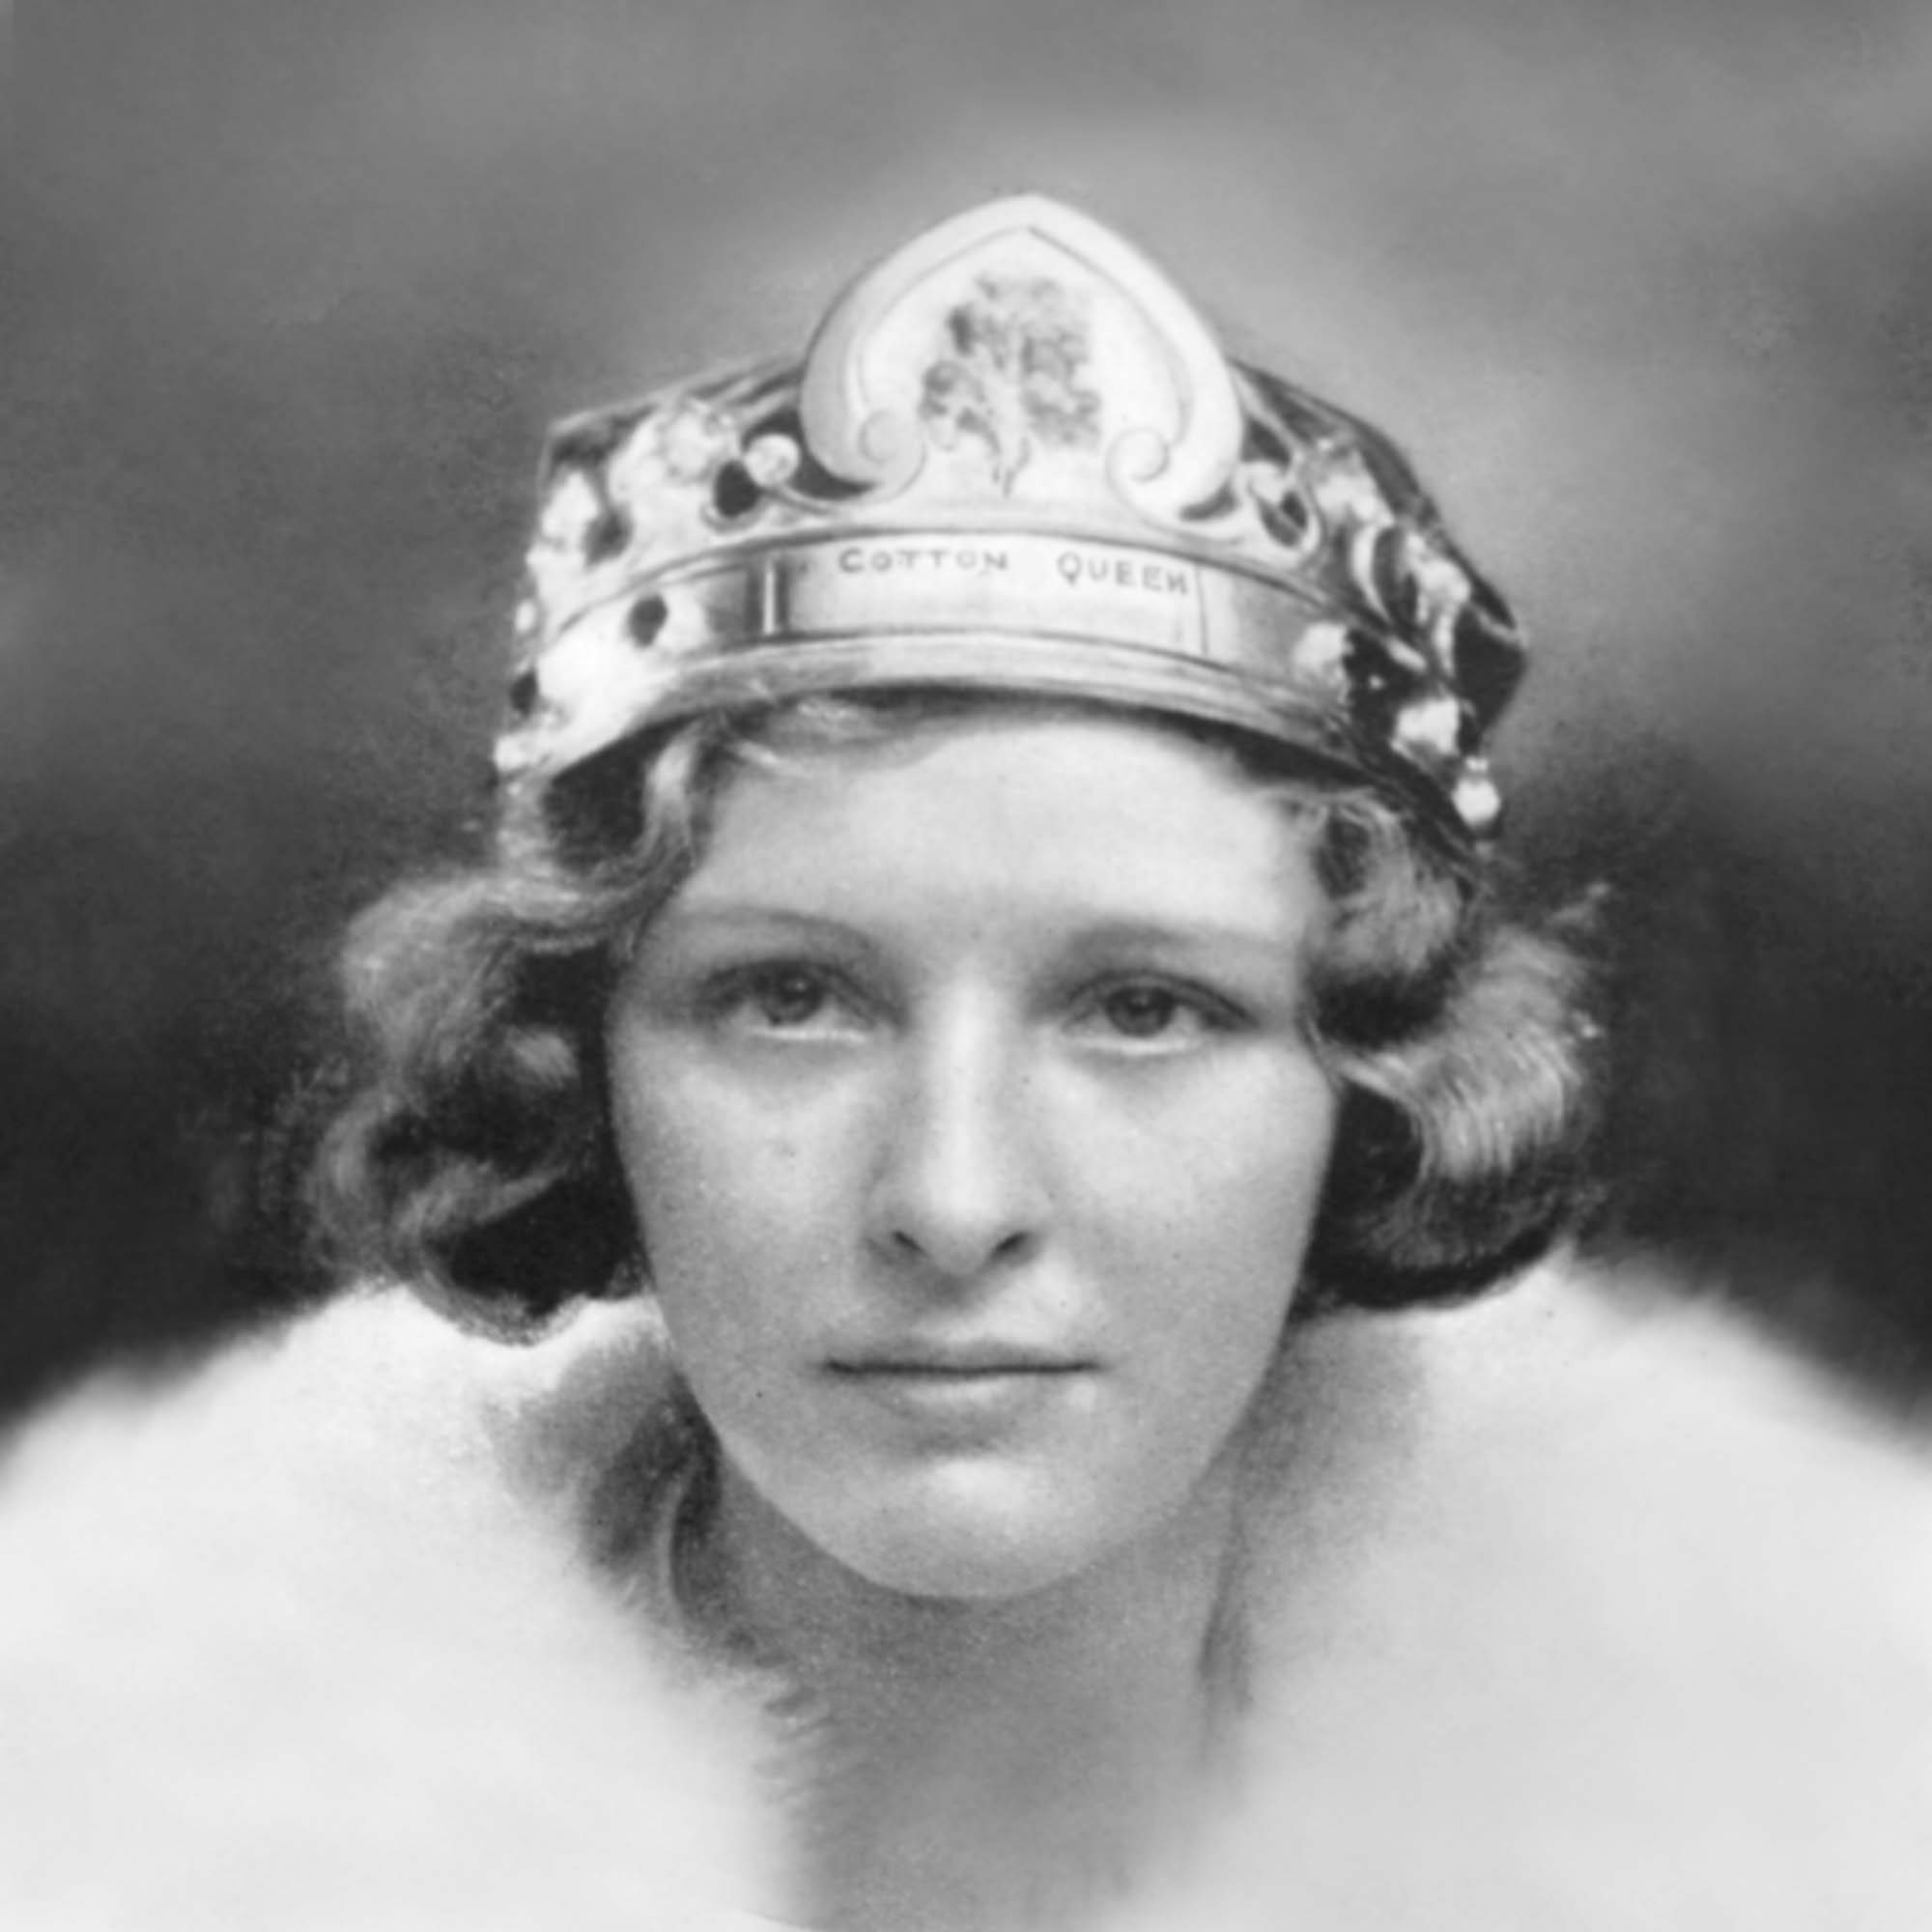 a black and white portrait photo of a young woman in a tiara